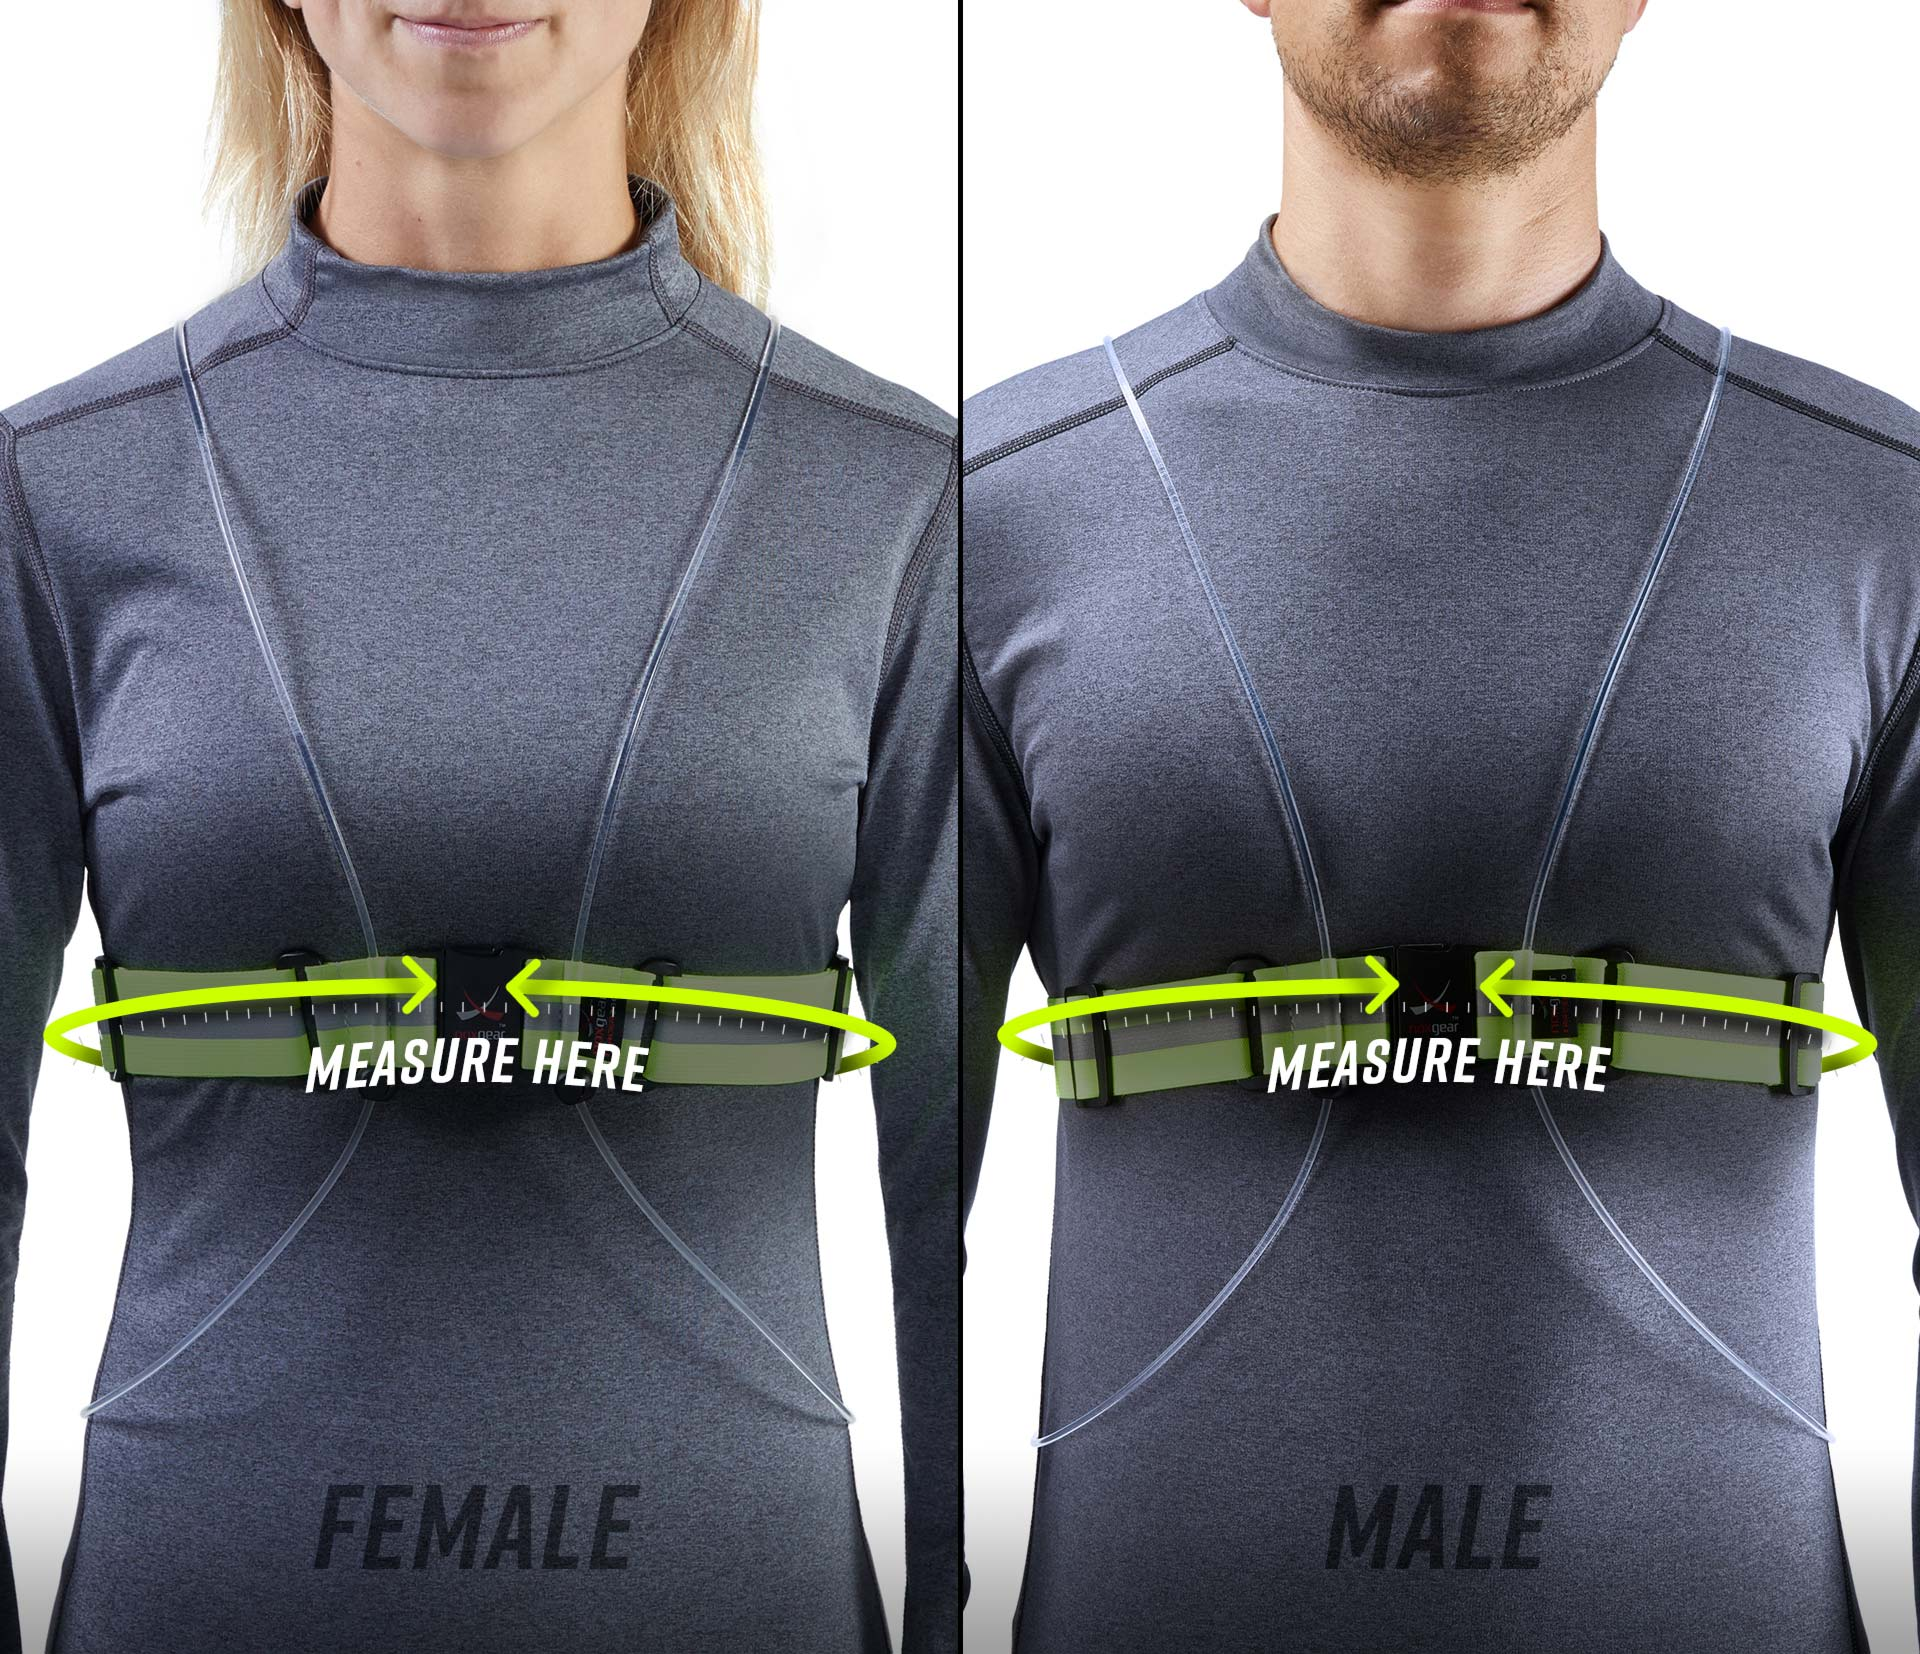 Photo showing the fit of a Tracer360 on the torso of a man and a woman.